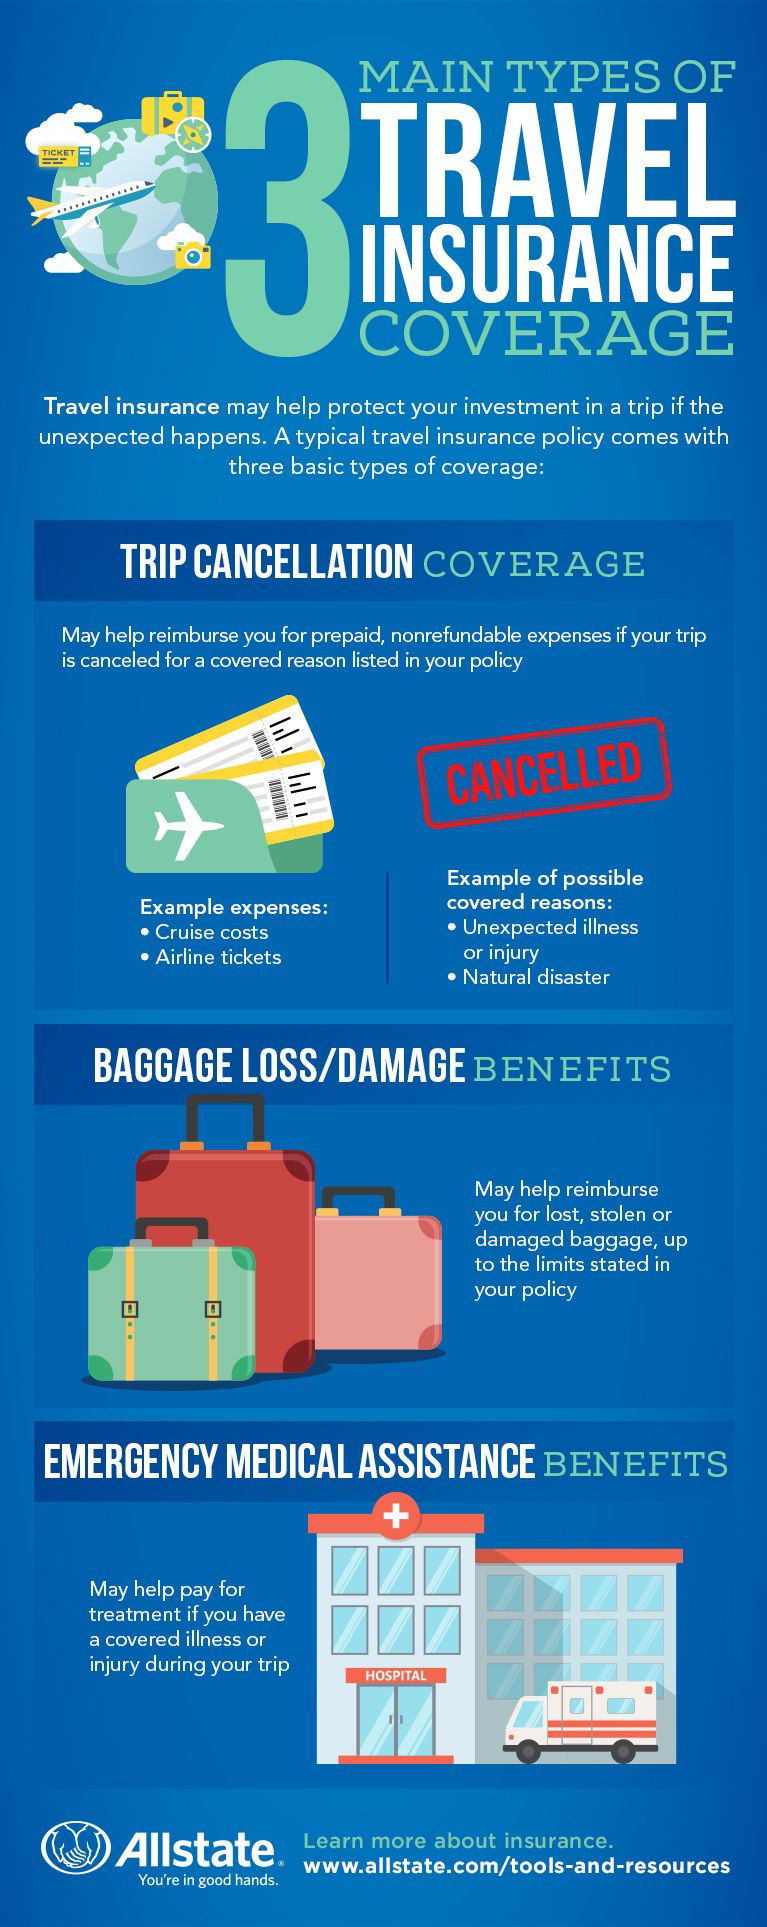 A typical travel insurance policy comes with three basic